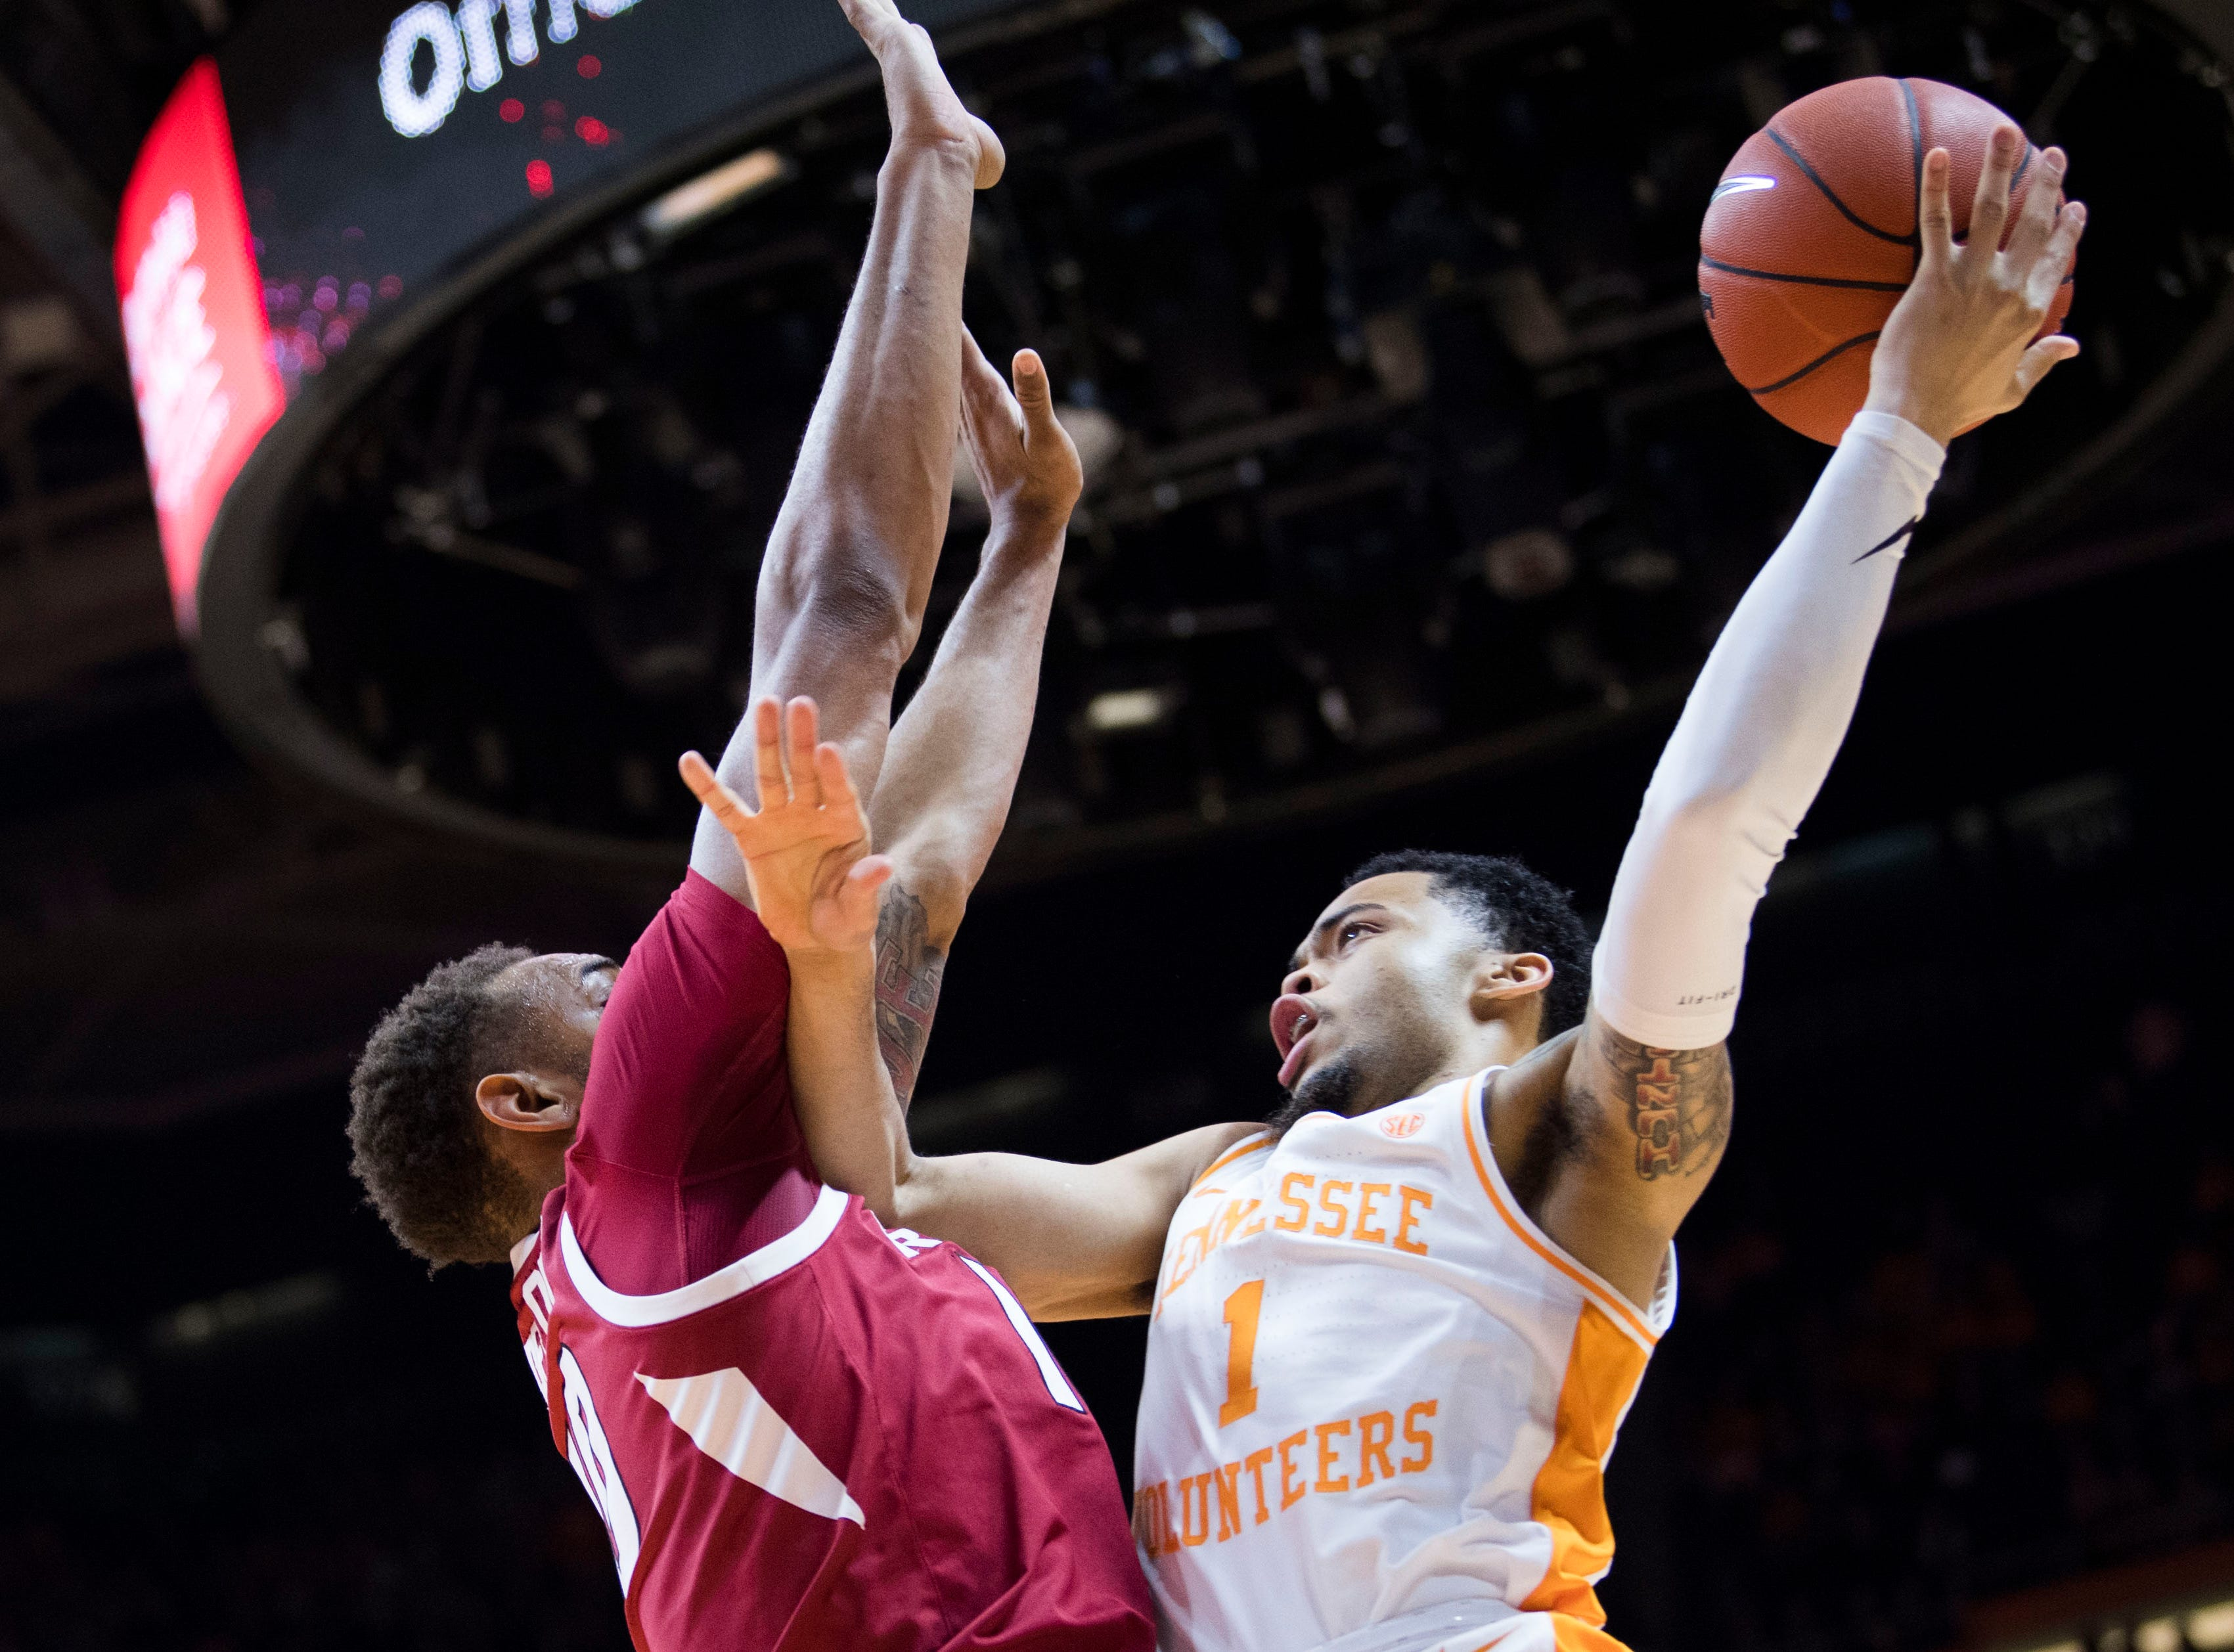 Tennessee guard Lamonte Turner (1) takes a shot during a NCAA men's basketball game between Tennessee and Arkansas at Thompson-Boling Arena Tuesday, Jan. 15, 2019.